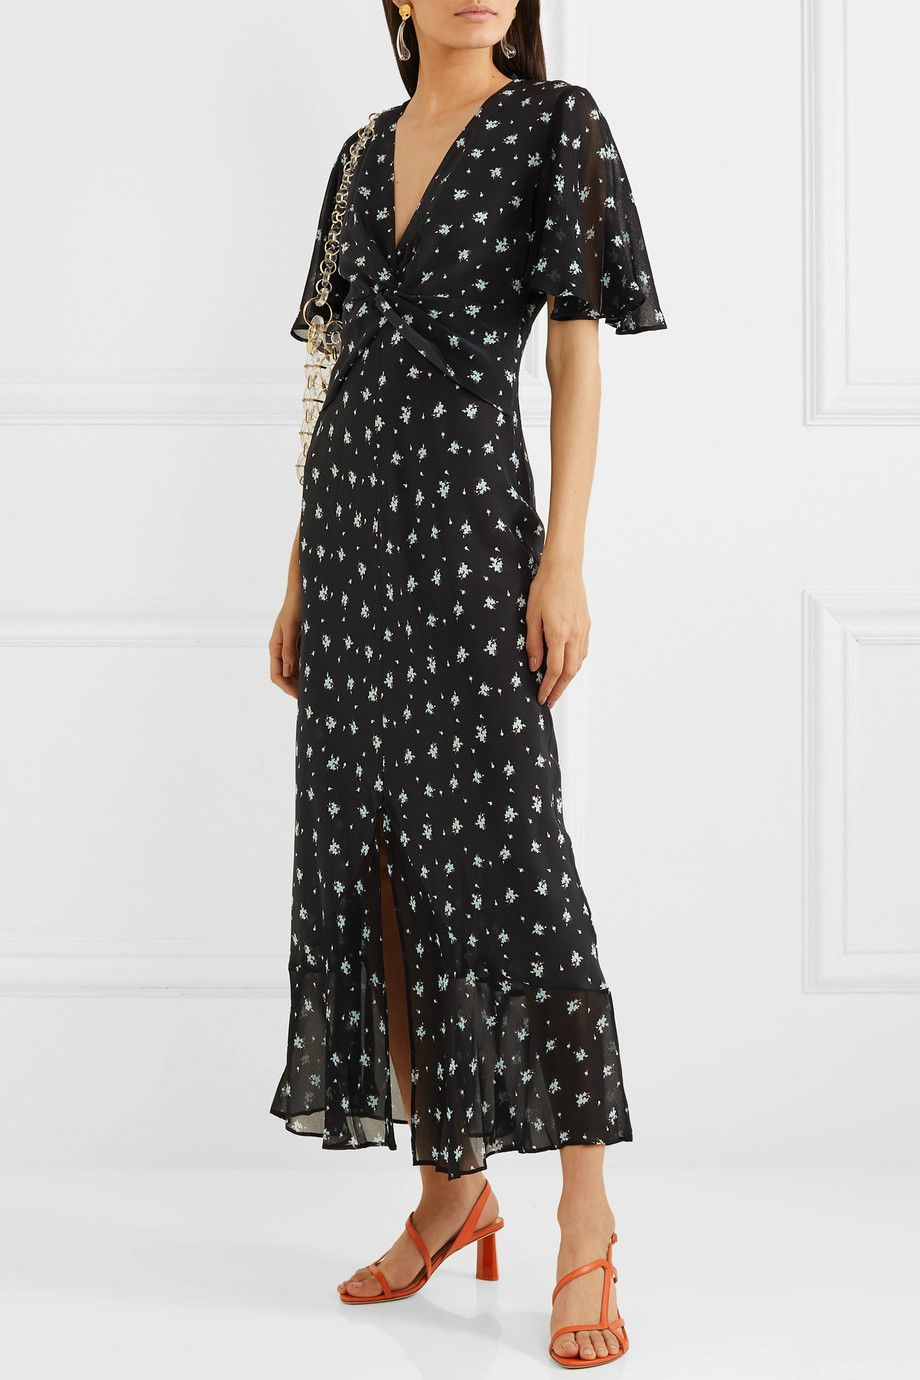 Can you wear black to a wedding? Best black dresses for